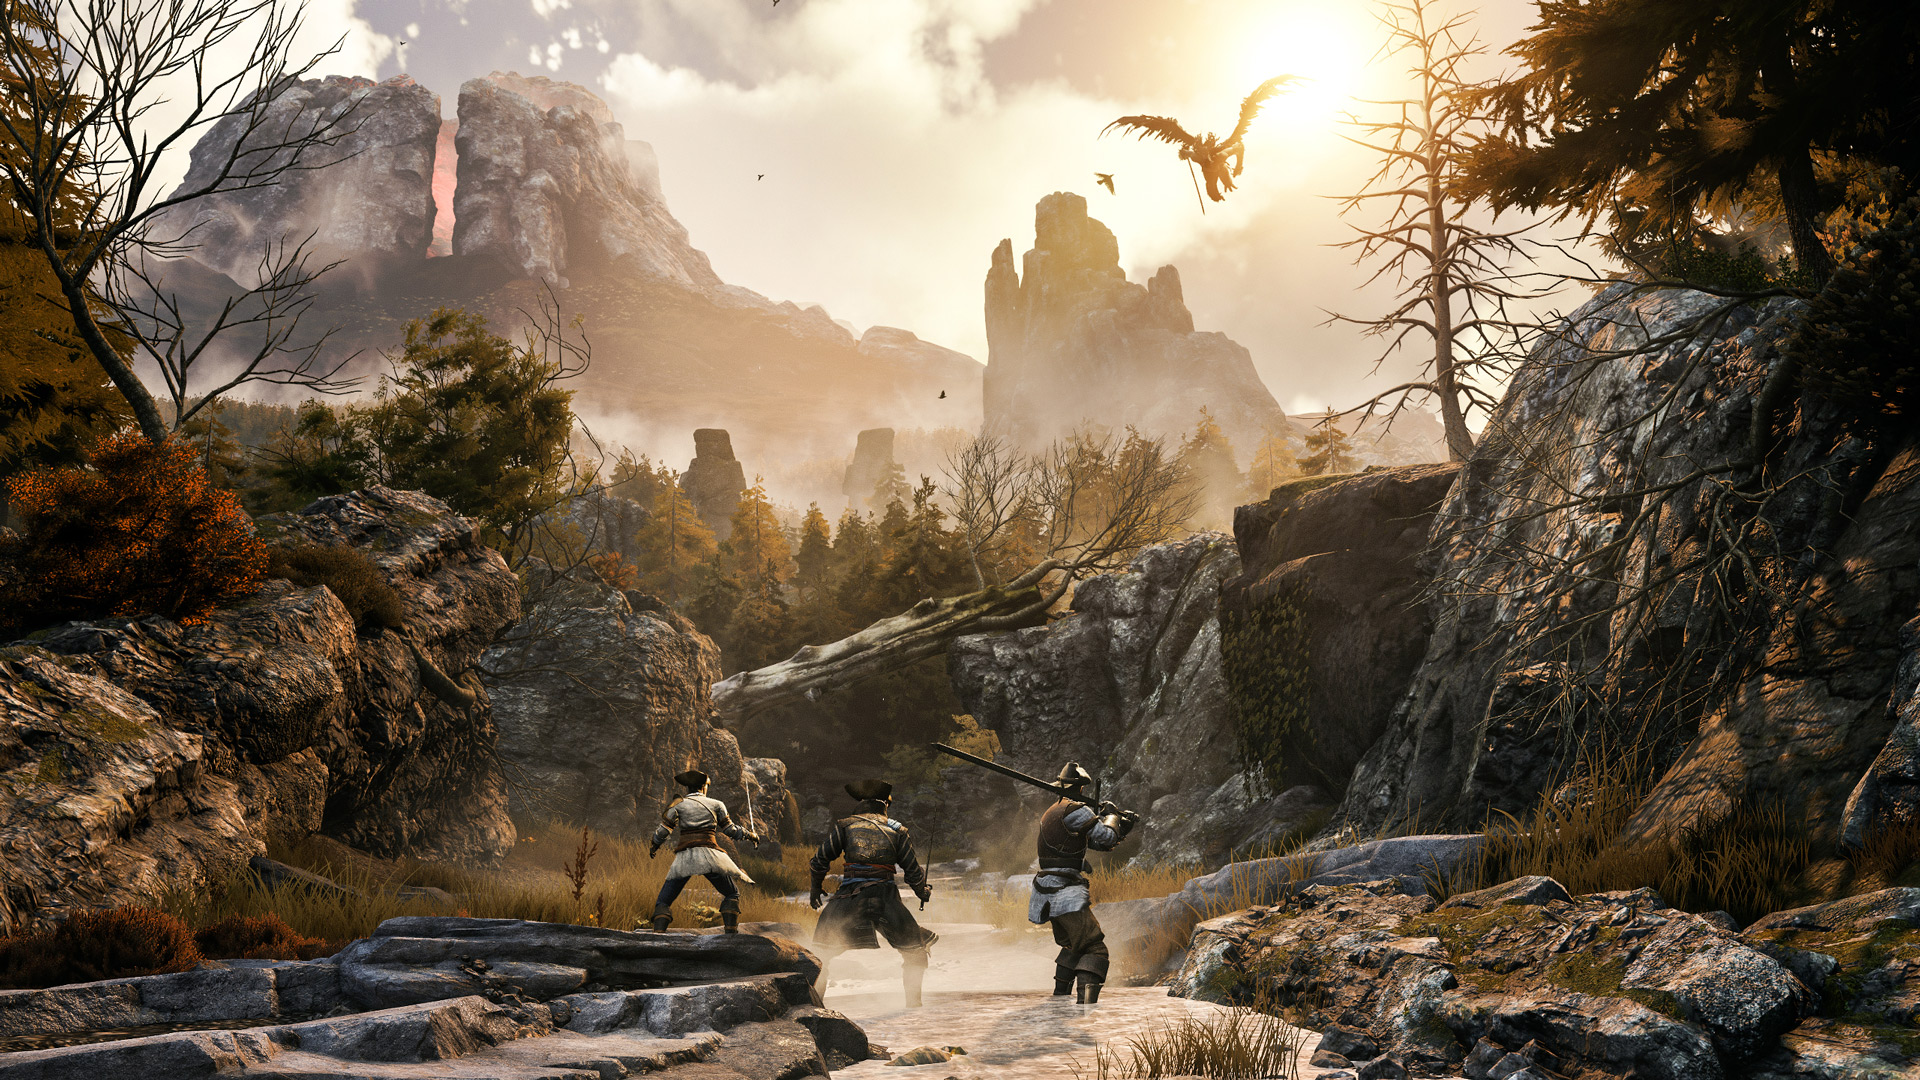 Is Greedfall the new Dragon Age we all hoped for?